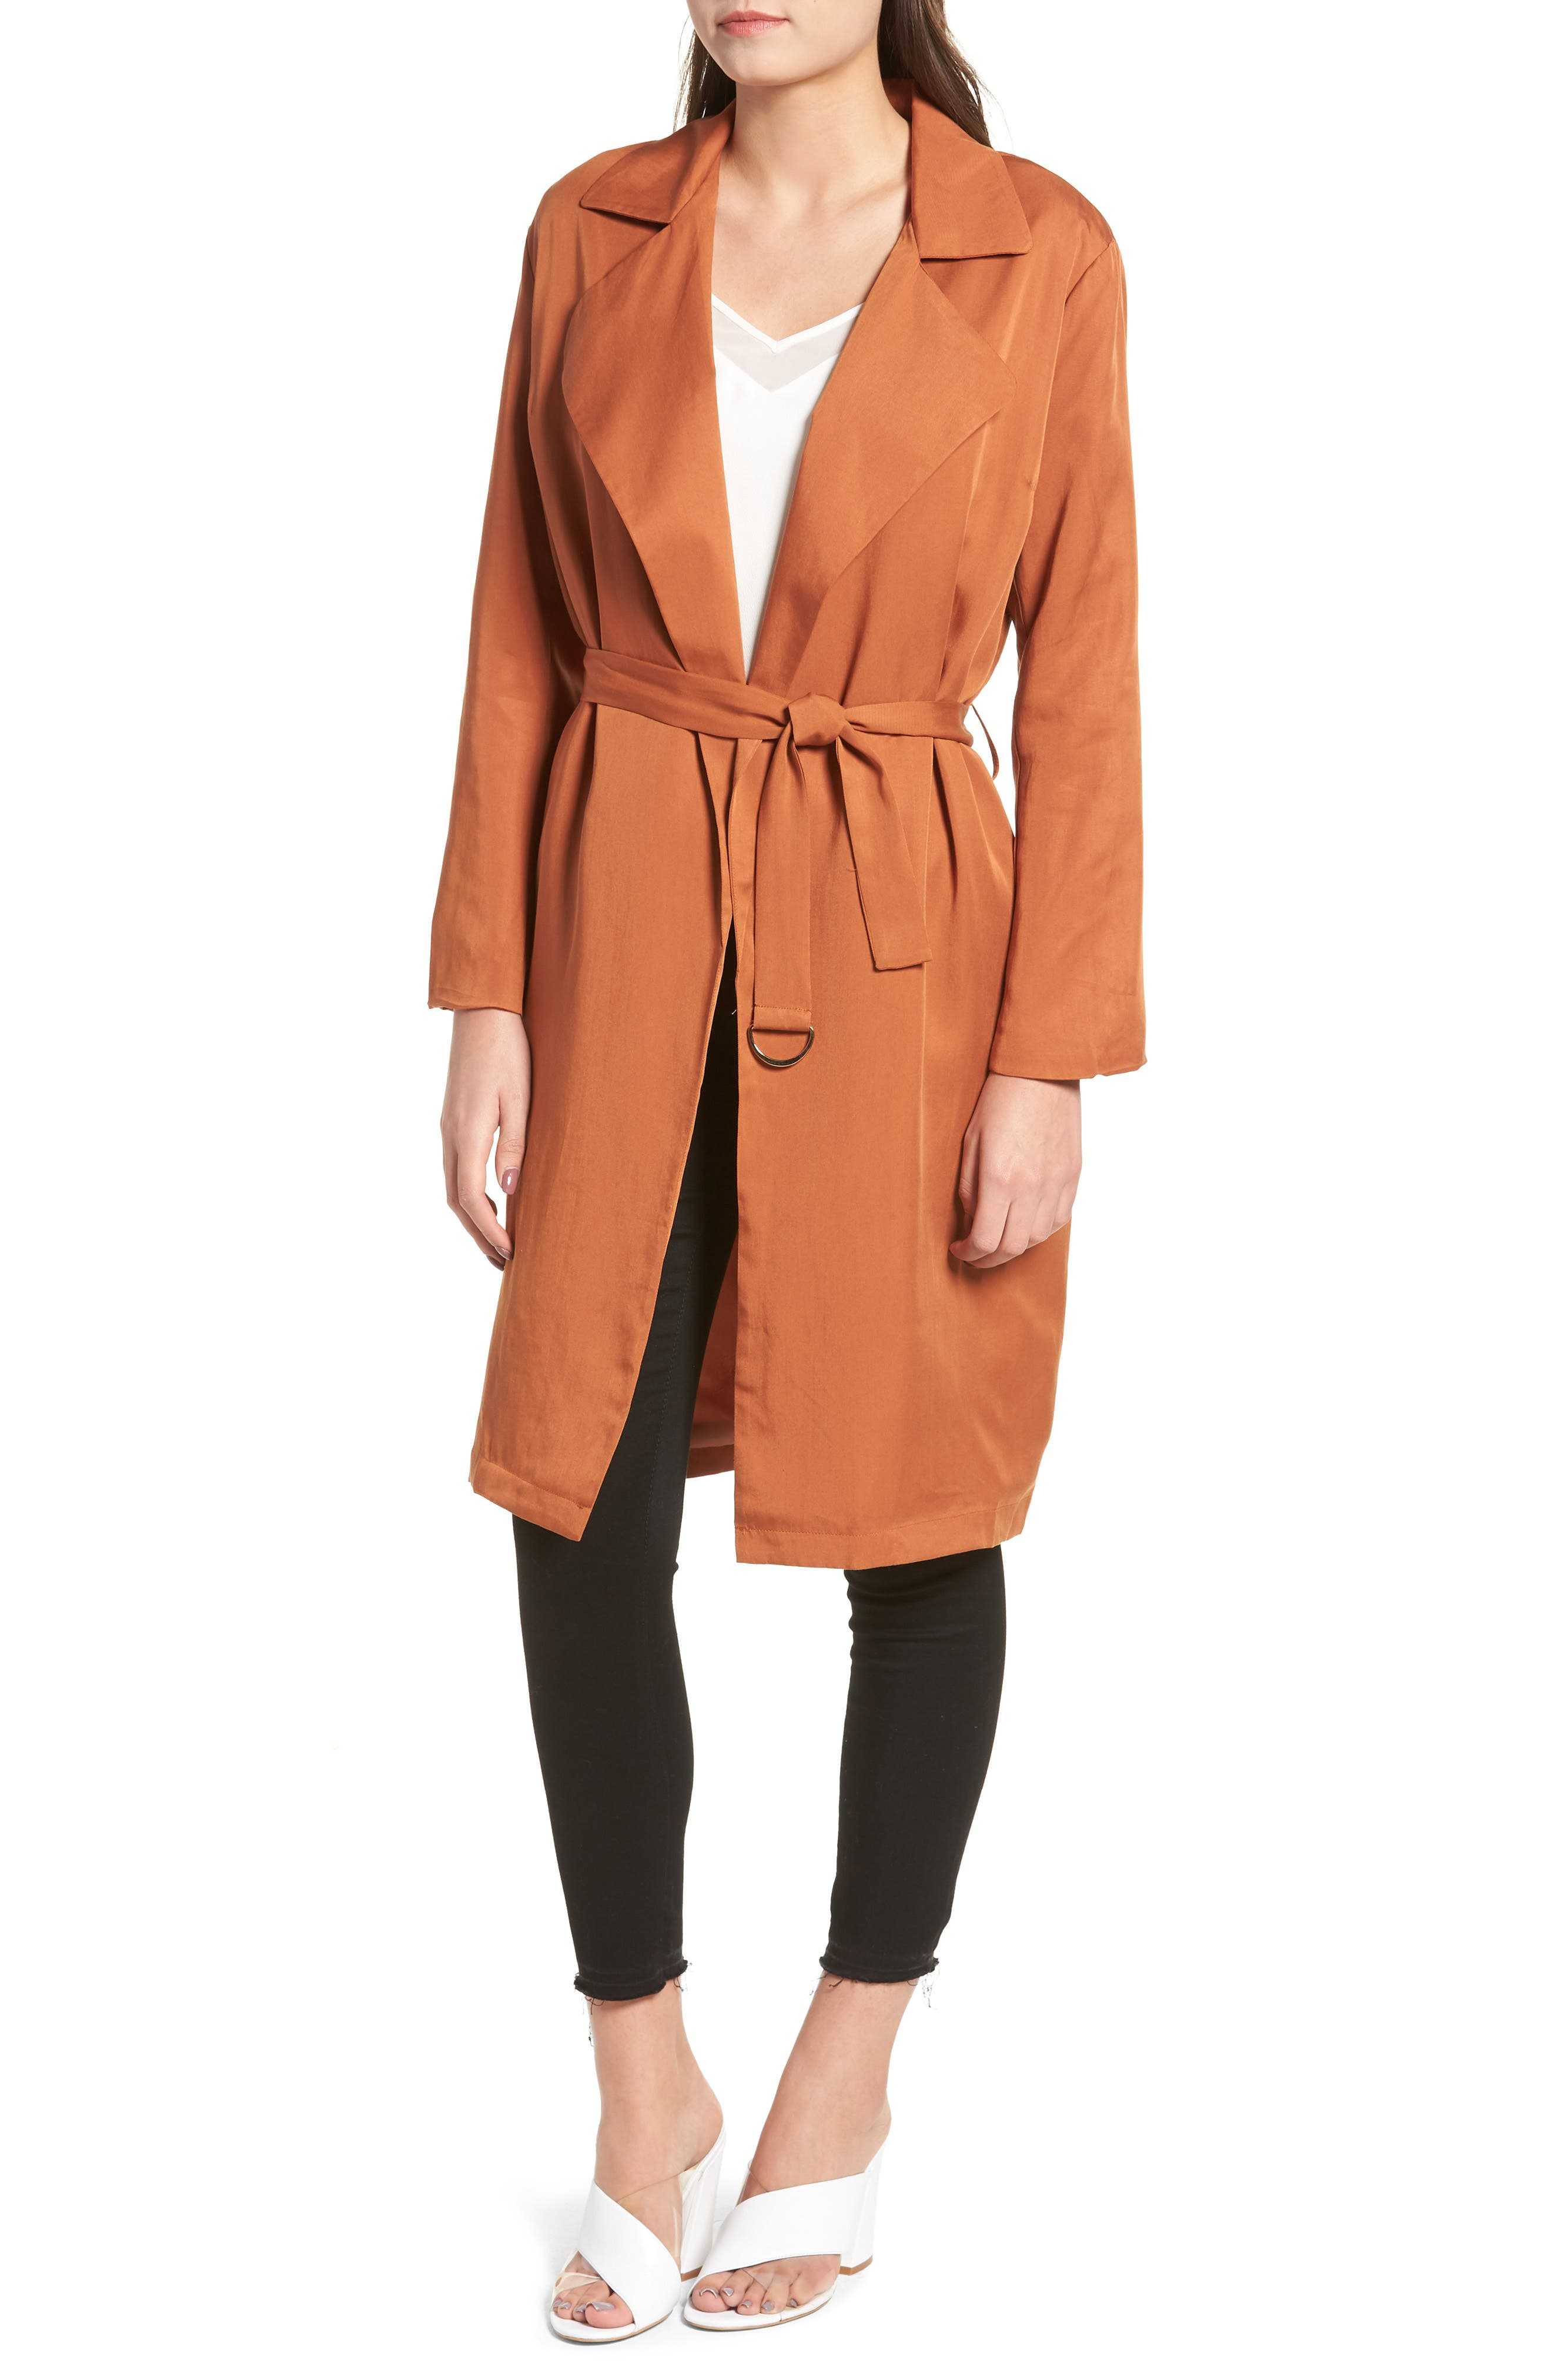 LIRA CLOTHING,                             Carmen Belted Trench Coat,                             Alternate thumbnail 4, color,                             BROWN